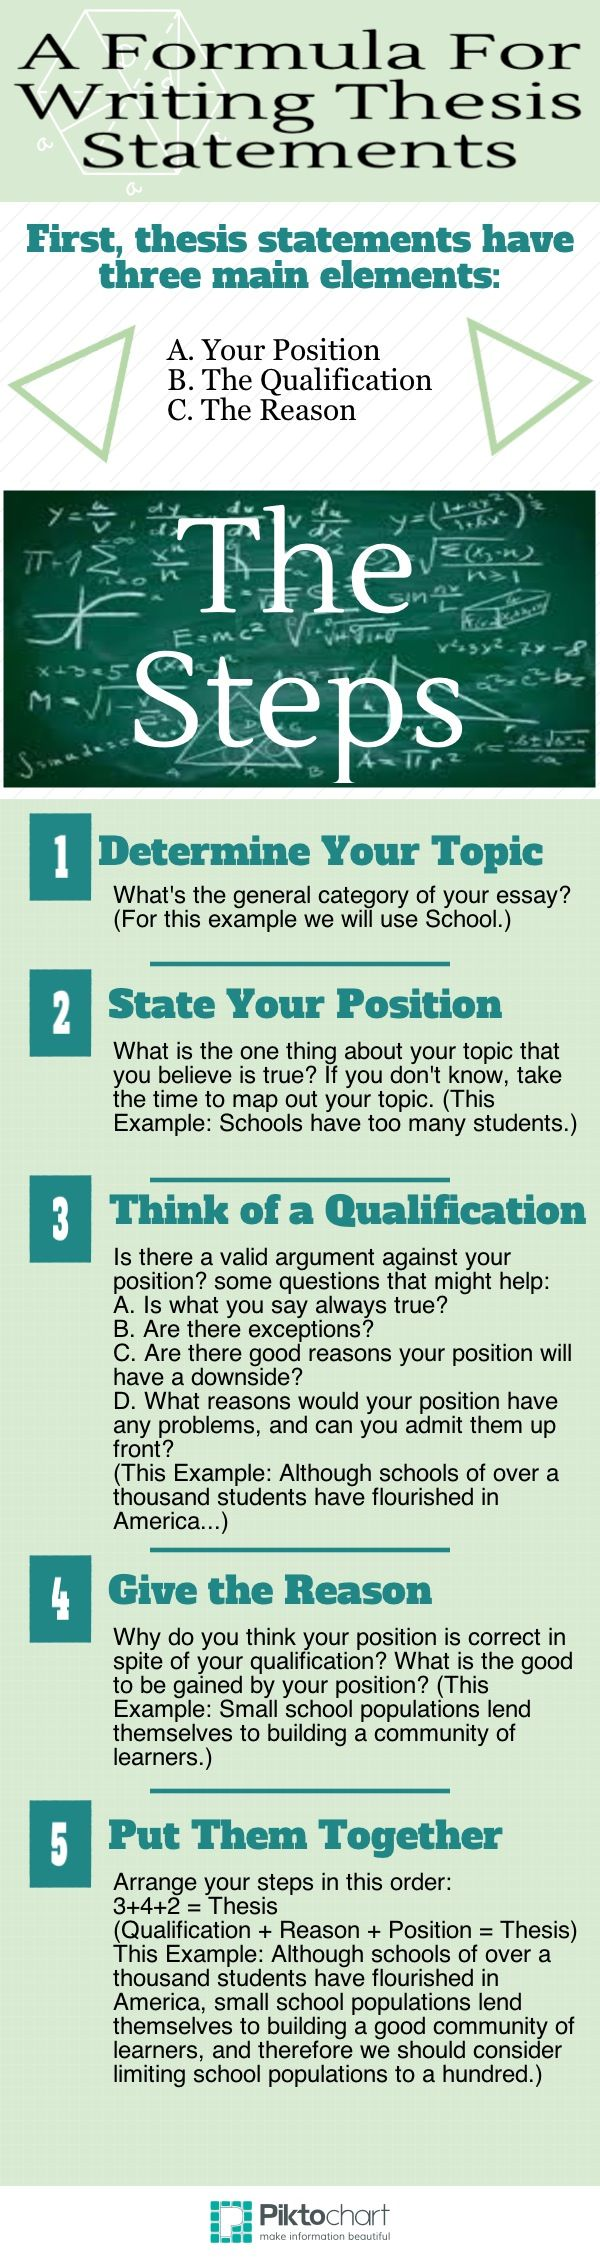 My School Essay In English Thesis Statements  Piktochart Infographic Position Paper Essay also Purpose Of Thesis Statement In An Essay Best  Thesis Writing Ideas On Pinterest  Essay Words Creative  How To Write An Essay For High School Students